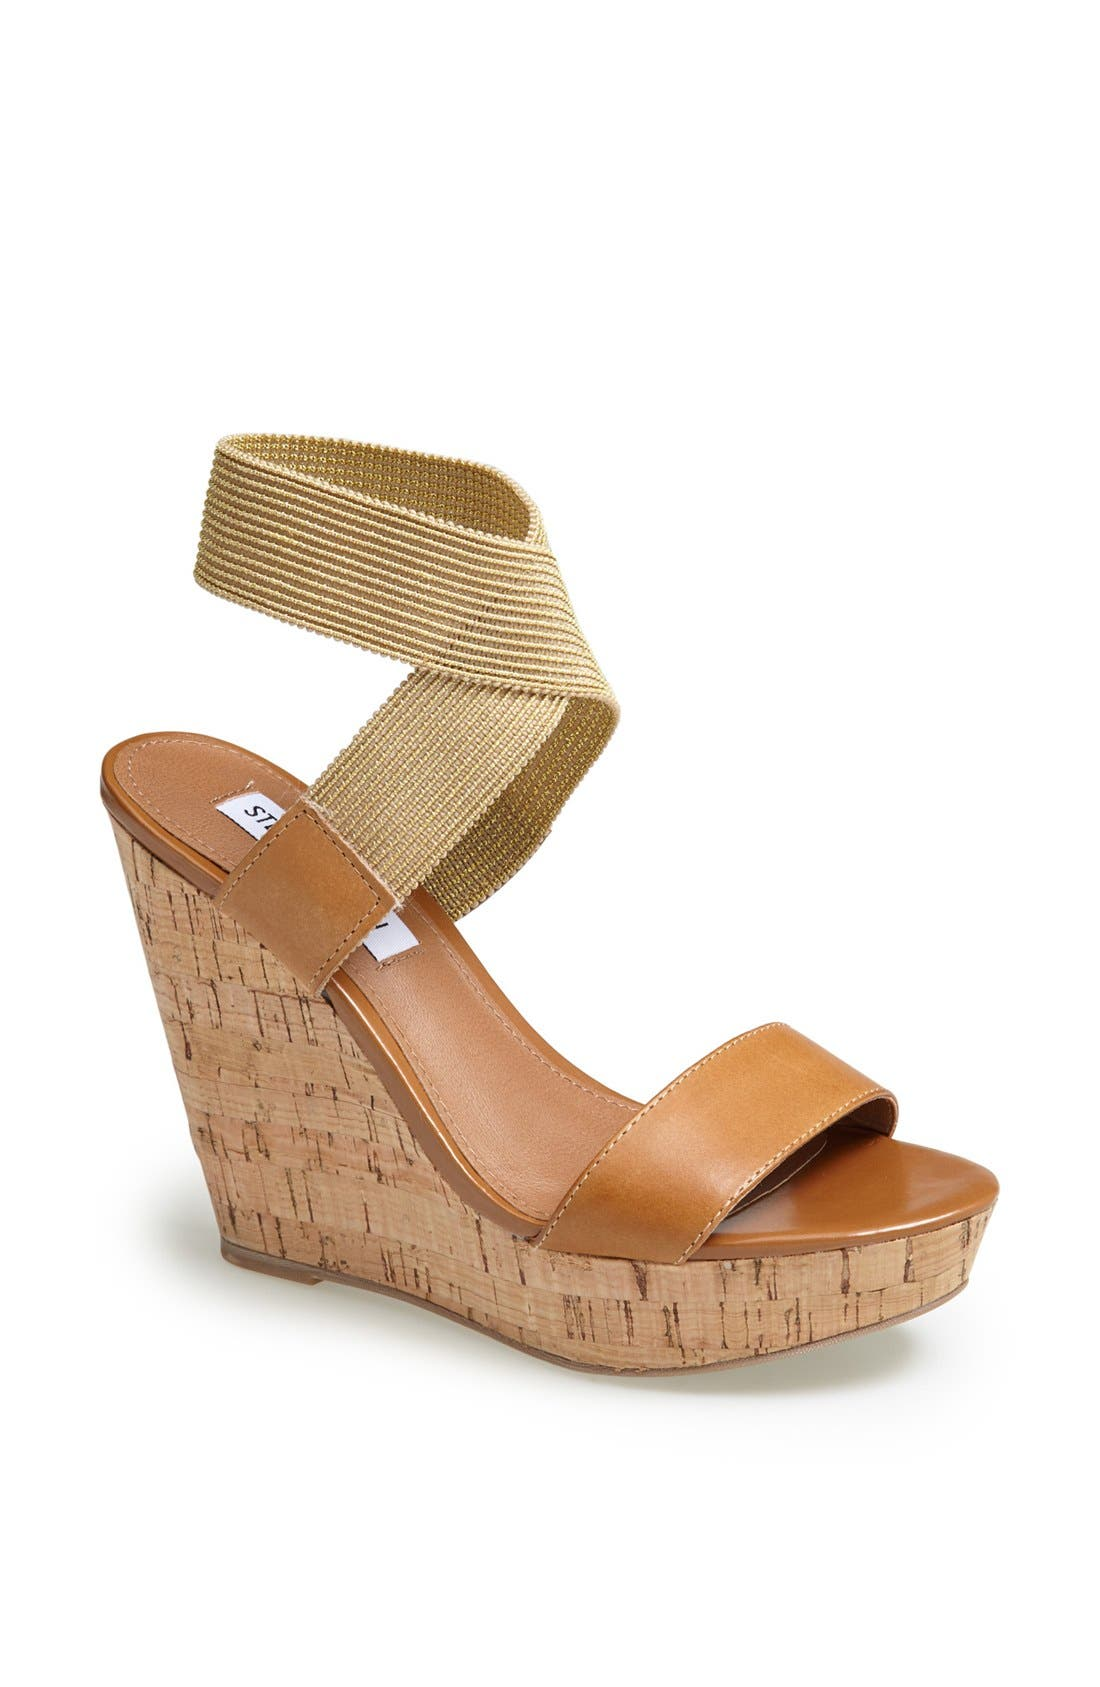 Alternate Image 1 Selected - Steve Madden 'Roperr' Wedge Sandal